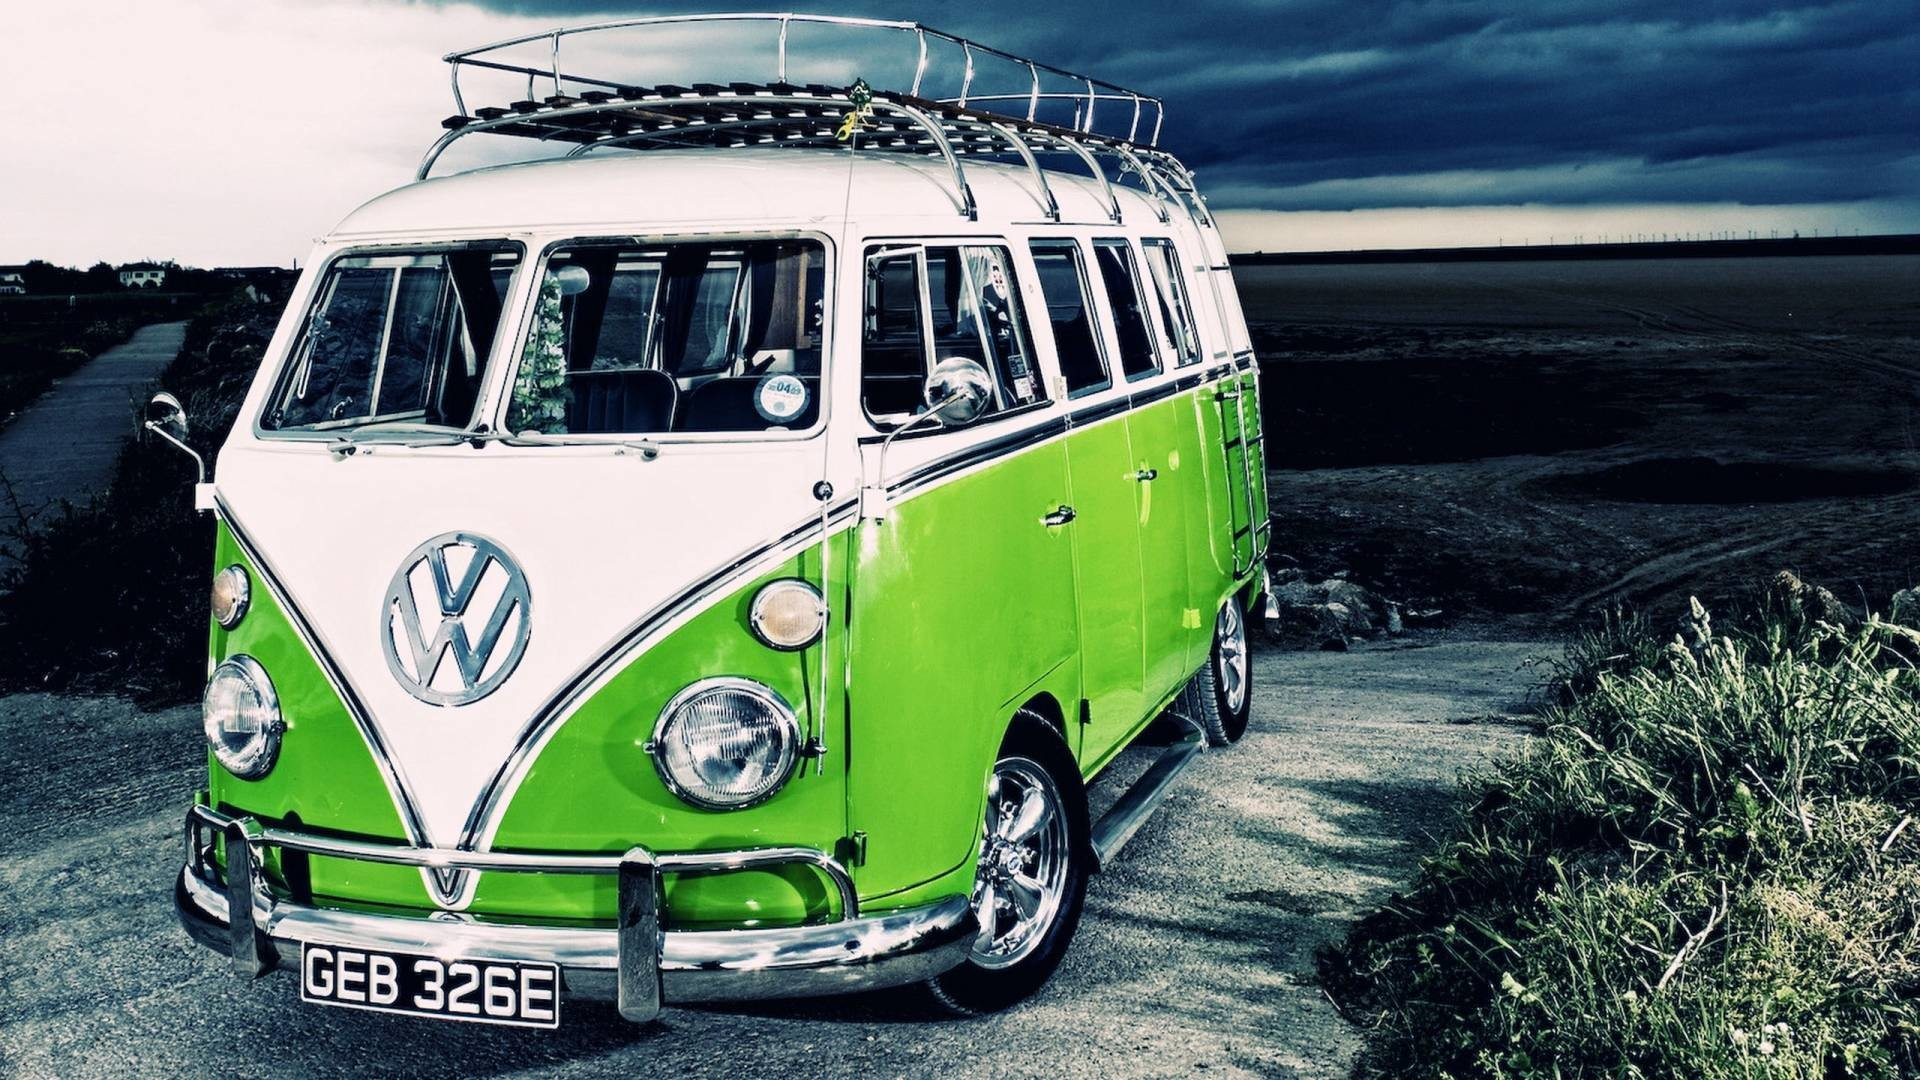 Best Wallpaper Gallery With Pc Wallpaper Volkswagen: VW Bus Wallpaper ·①